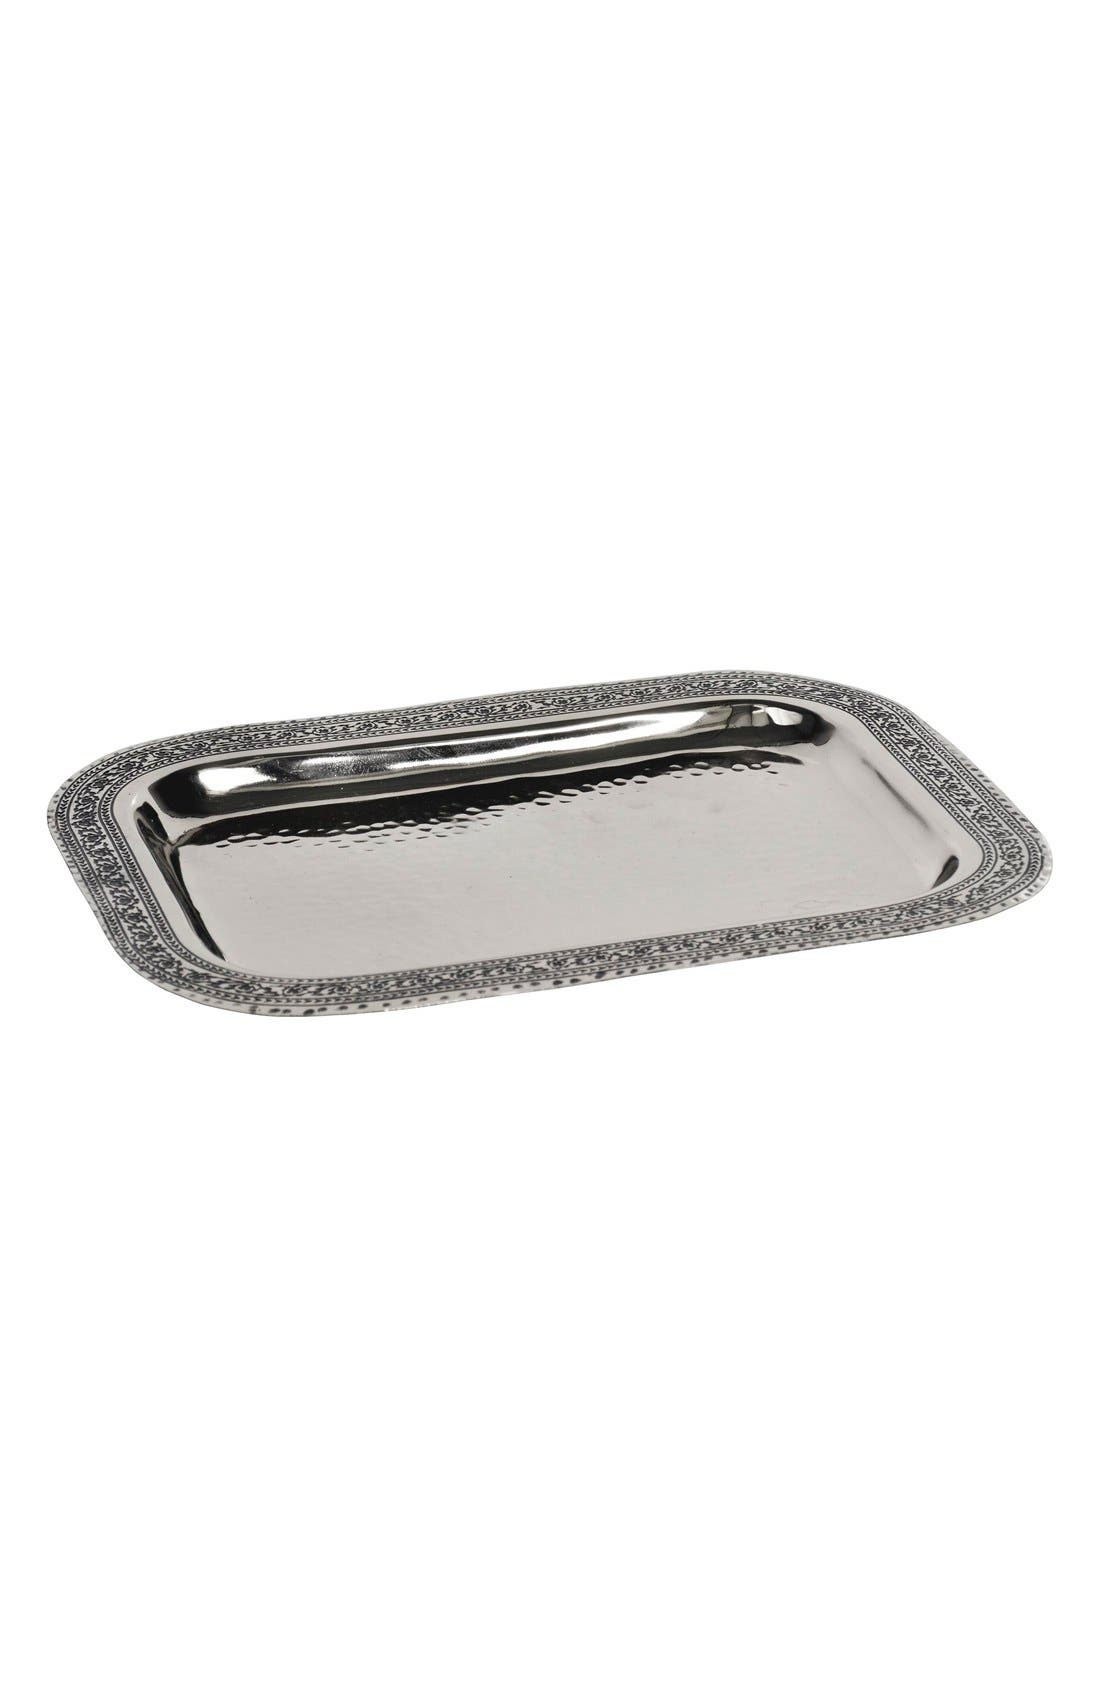 'Taxila' Tray,                         Main,                         color, Silver